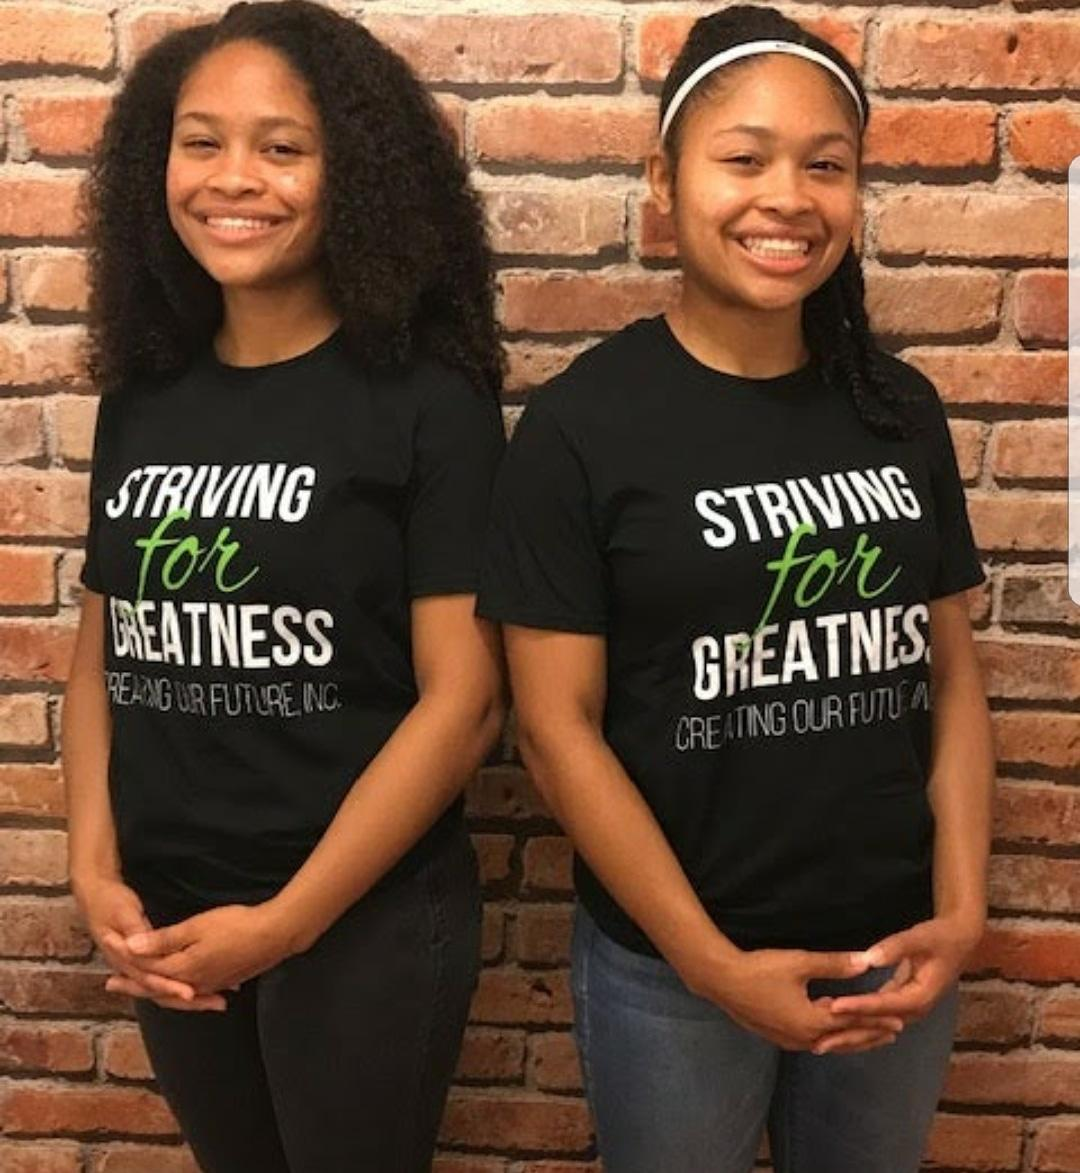 Mentorship is very important to our organization and we cant do it without your support. Help us reach more youth and provide the services needed to help our youth Strive for Greatness. Purchase shirt today for a donation of $20.00